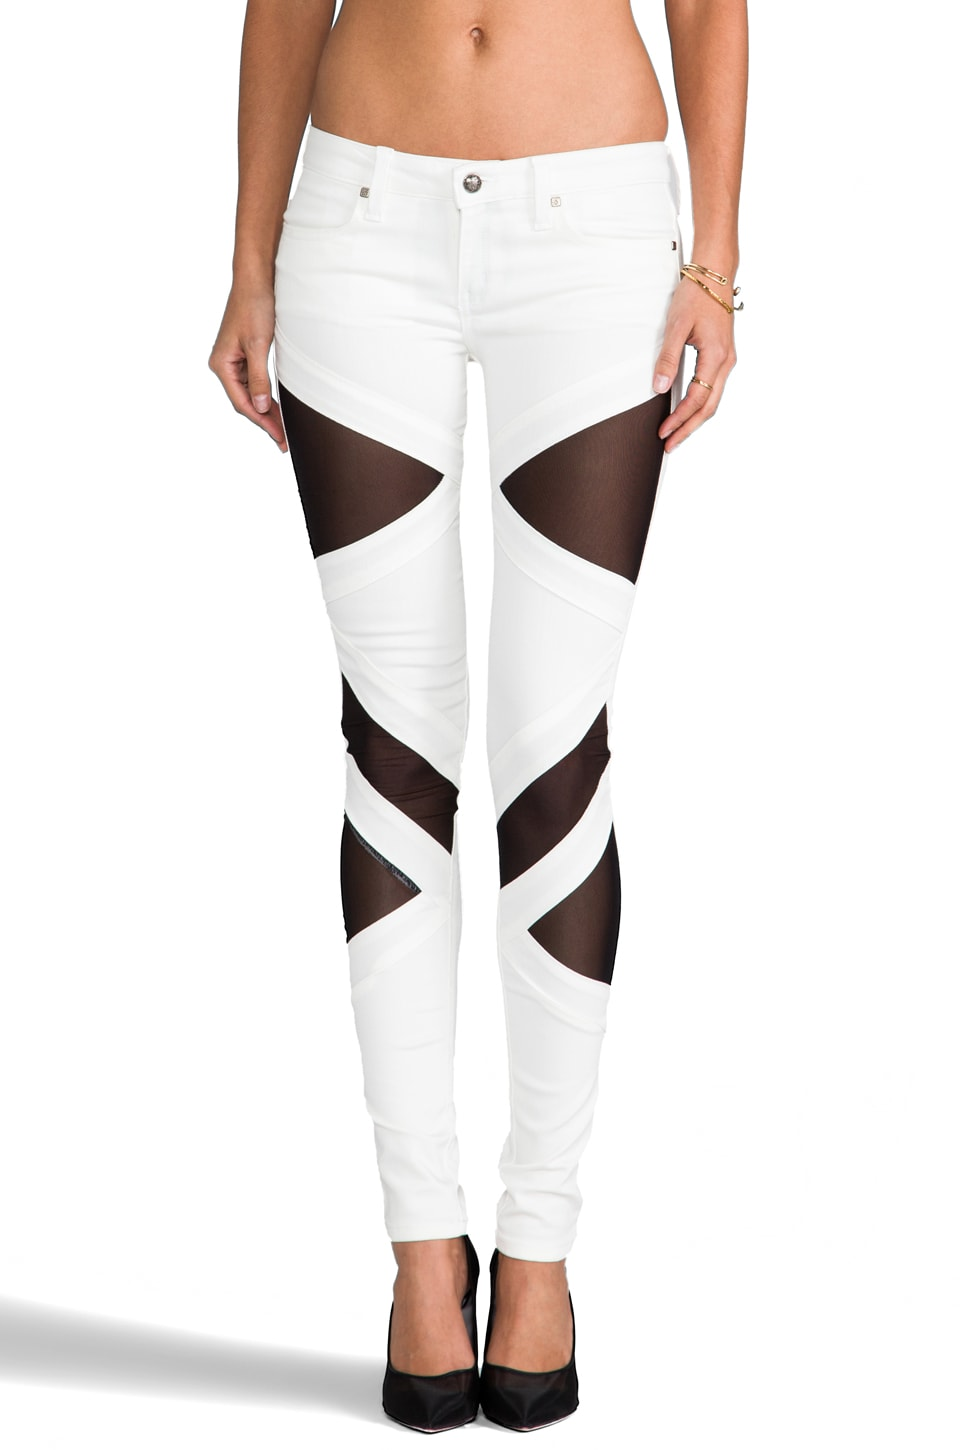 Frankie B. Jeans EXCLUSIVE Bondage Skinny in White/Black